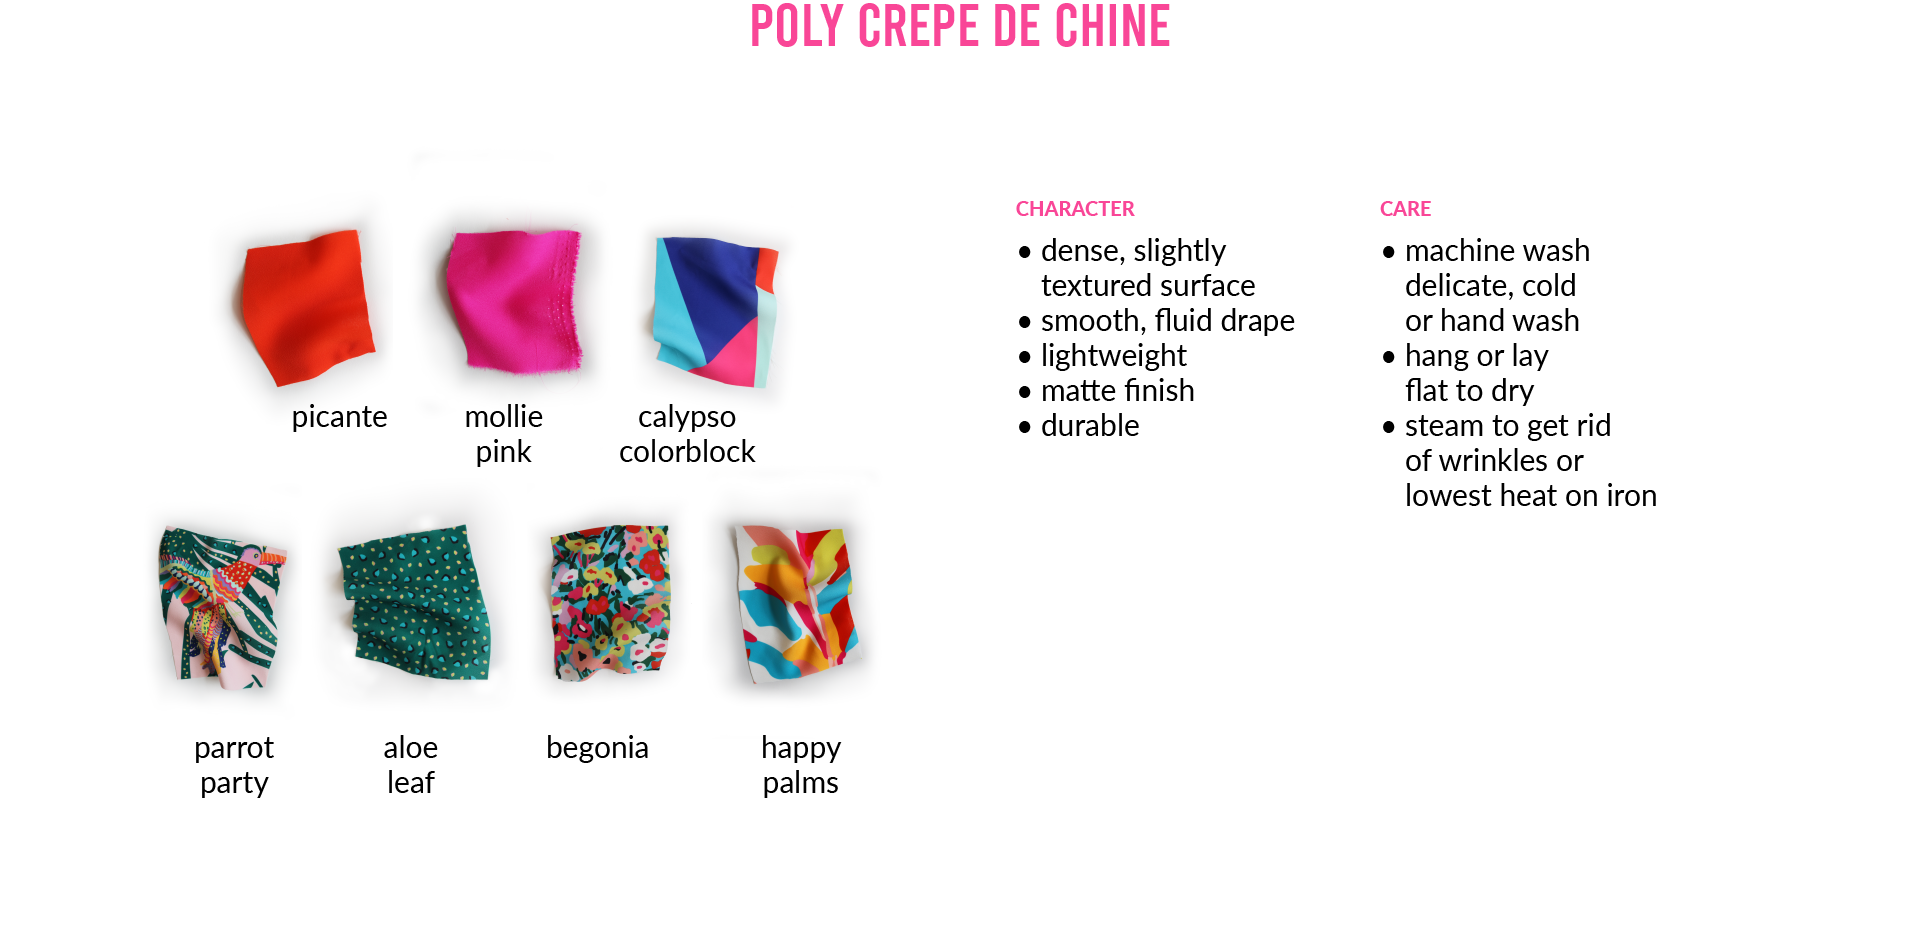 Poly Crepe de Chine: CHARACTER• dense, slightly textured surface • smooth, fluid drape • lightweight • matte finish • durableCARE • machine wash delicate, cold or hand wash • hang or lay flat to dry • steam to get rid of wrinkles or lowest heat on iron